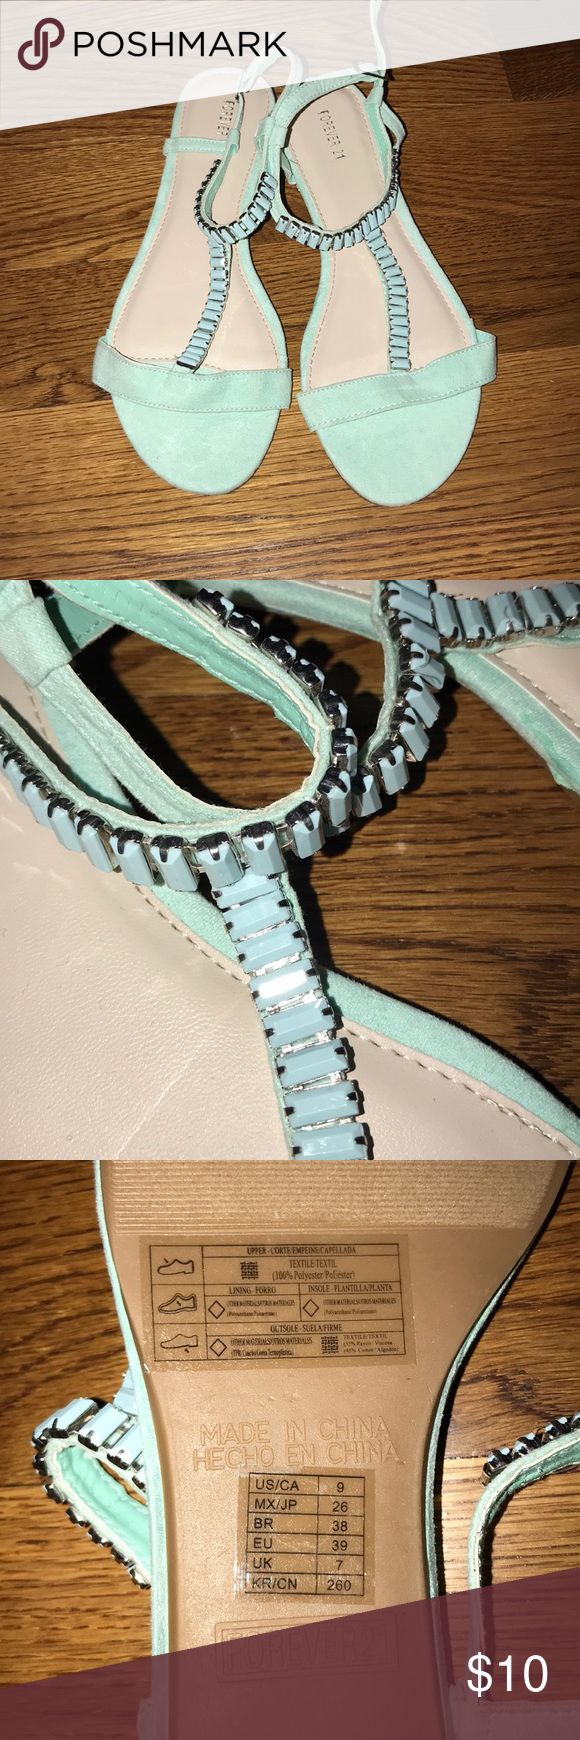 Teal Sandals Teal sandals with cute jewels! Never worn but does not have price tags. Let me know if you have any questions & i'm taking offers! Forever 21 Shoes Sandals